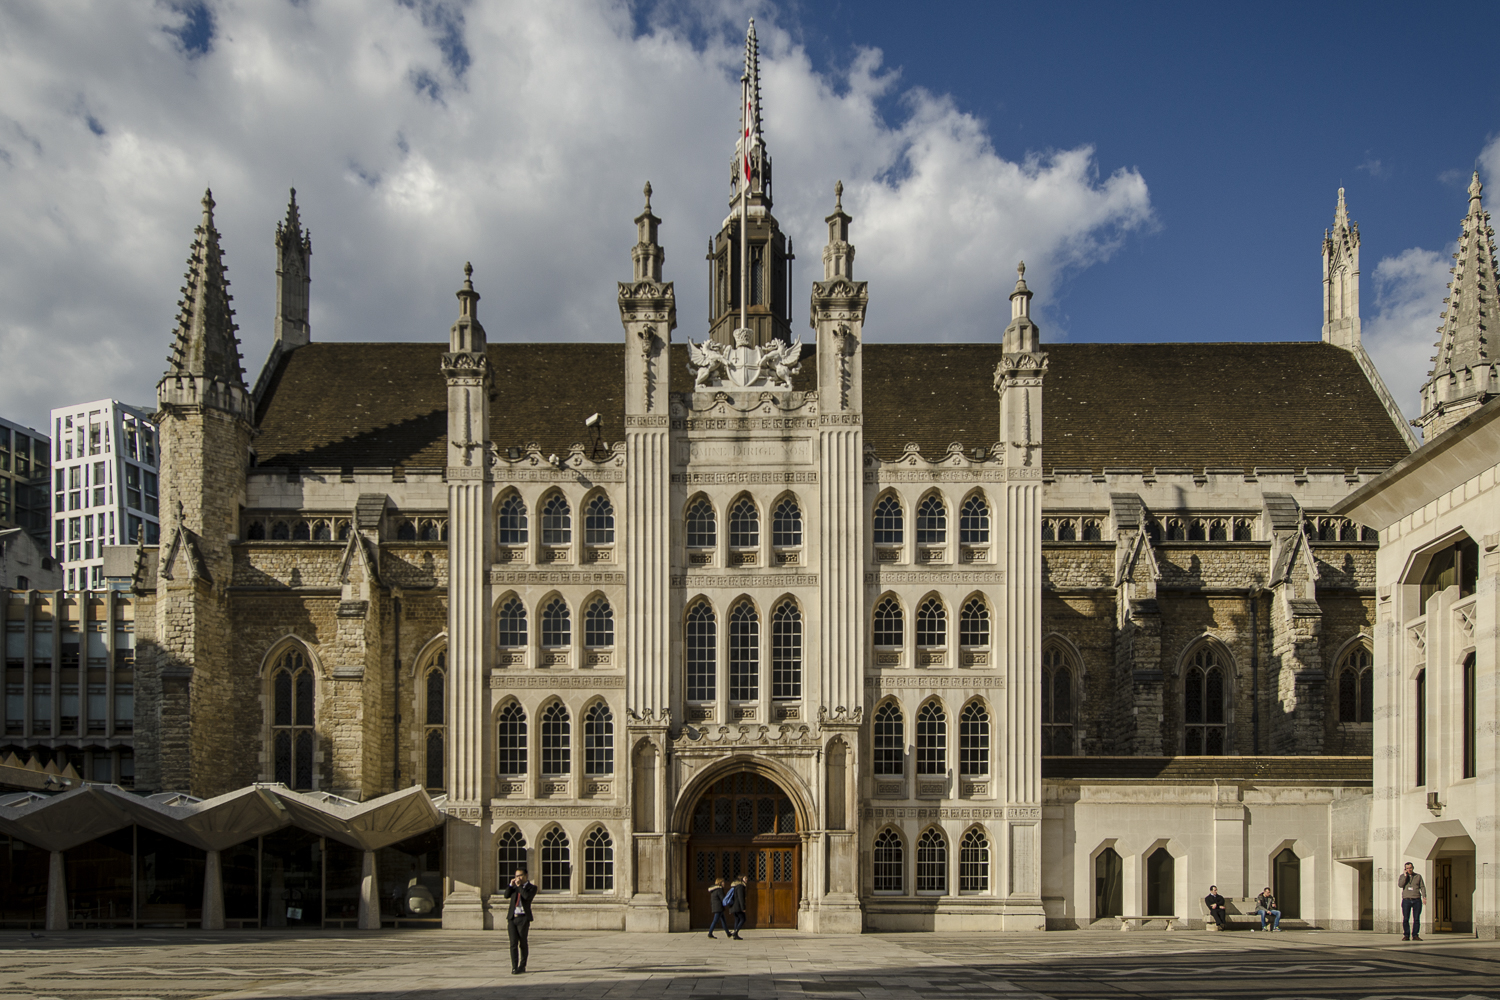 The Guildhall of the City of London - PHOTO: ALEXANDER J.E. BRADLEY - NIKON D7100 - 14-24 F/2.8 @ 18MM - F/6.3 - 1/1600 -ISO 100